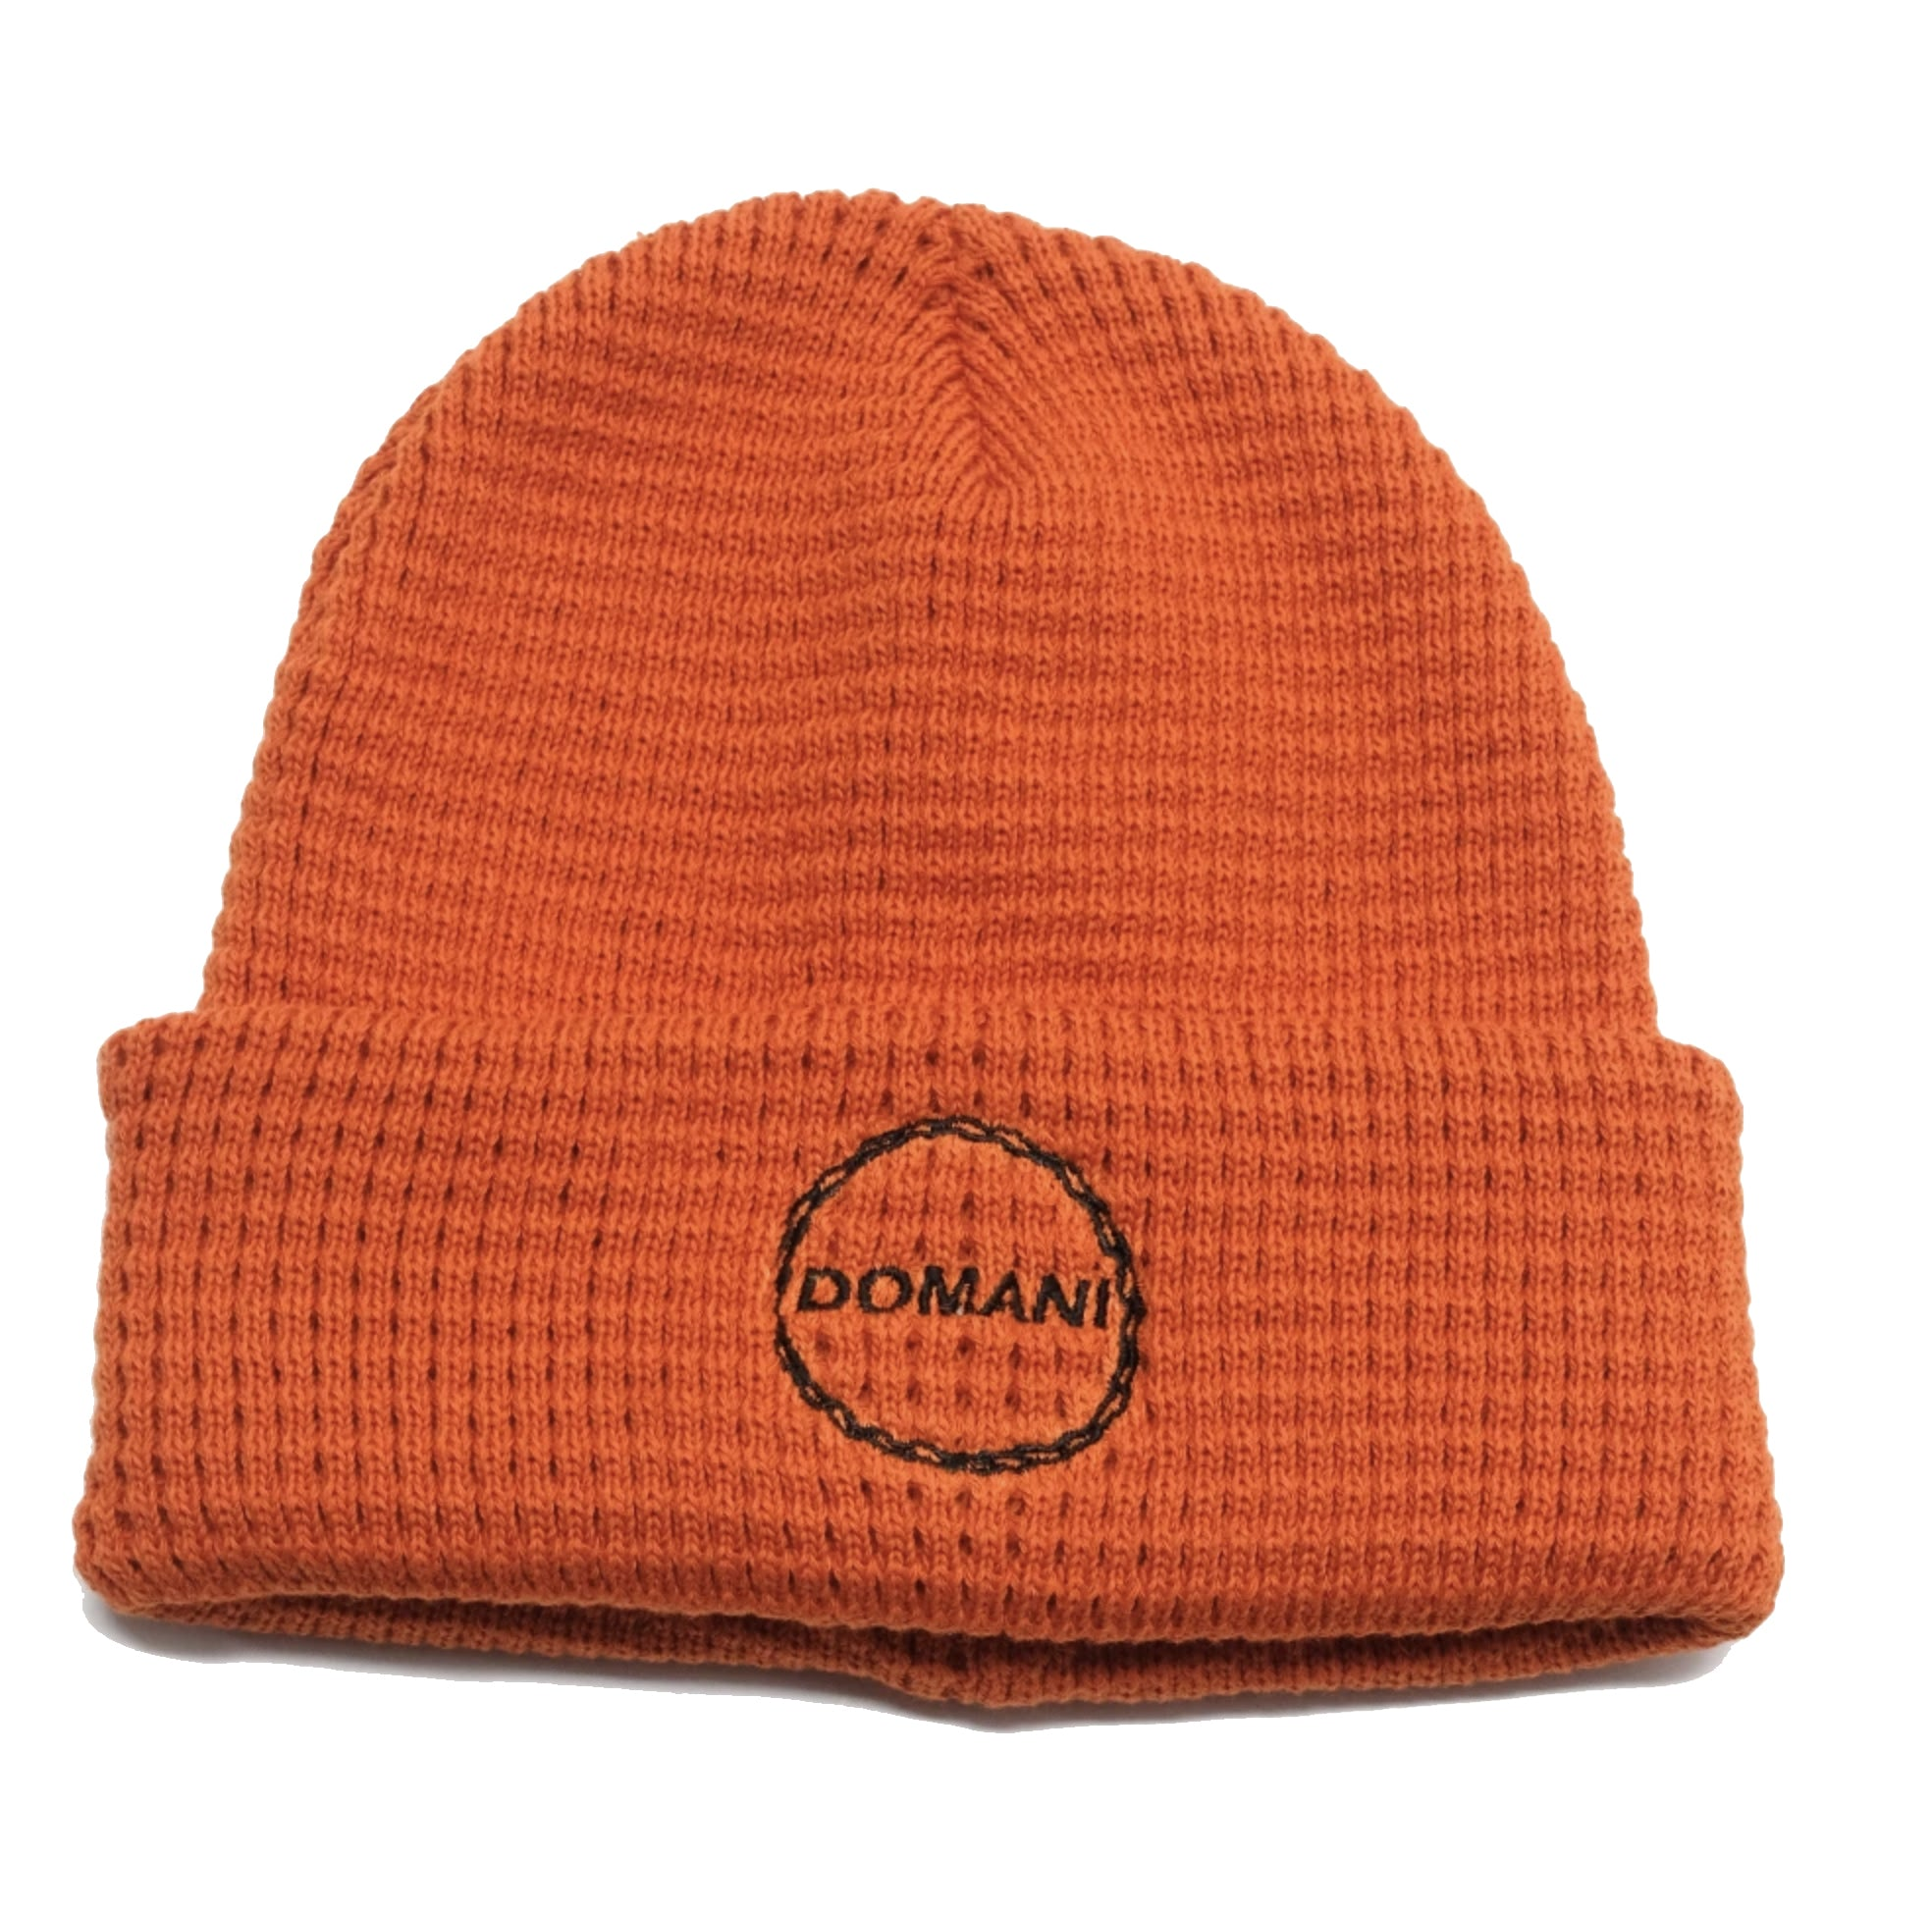 O.N.S / Death To Tennis / Druthers - Organic Cotton Waffle Knit Beanie